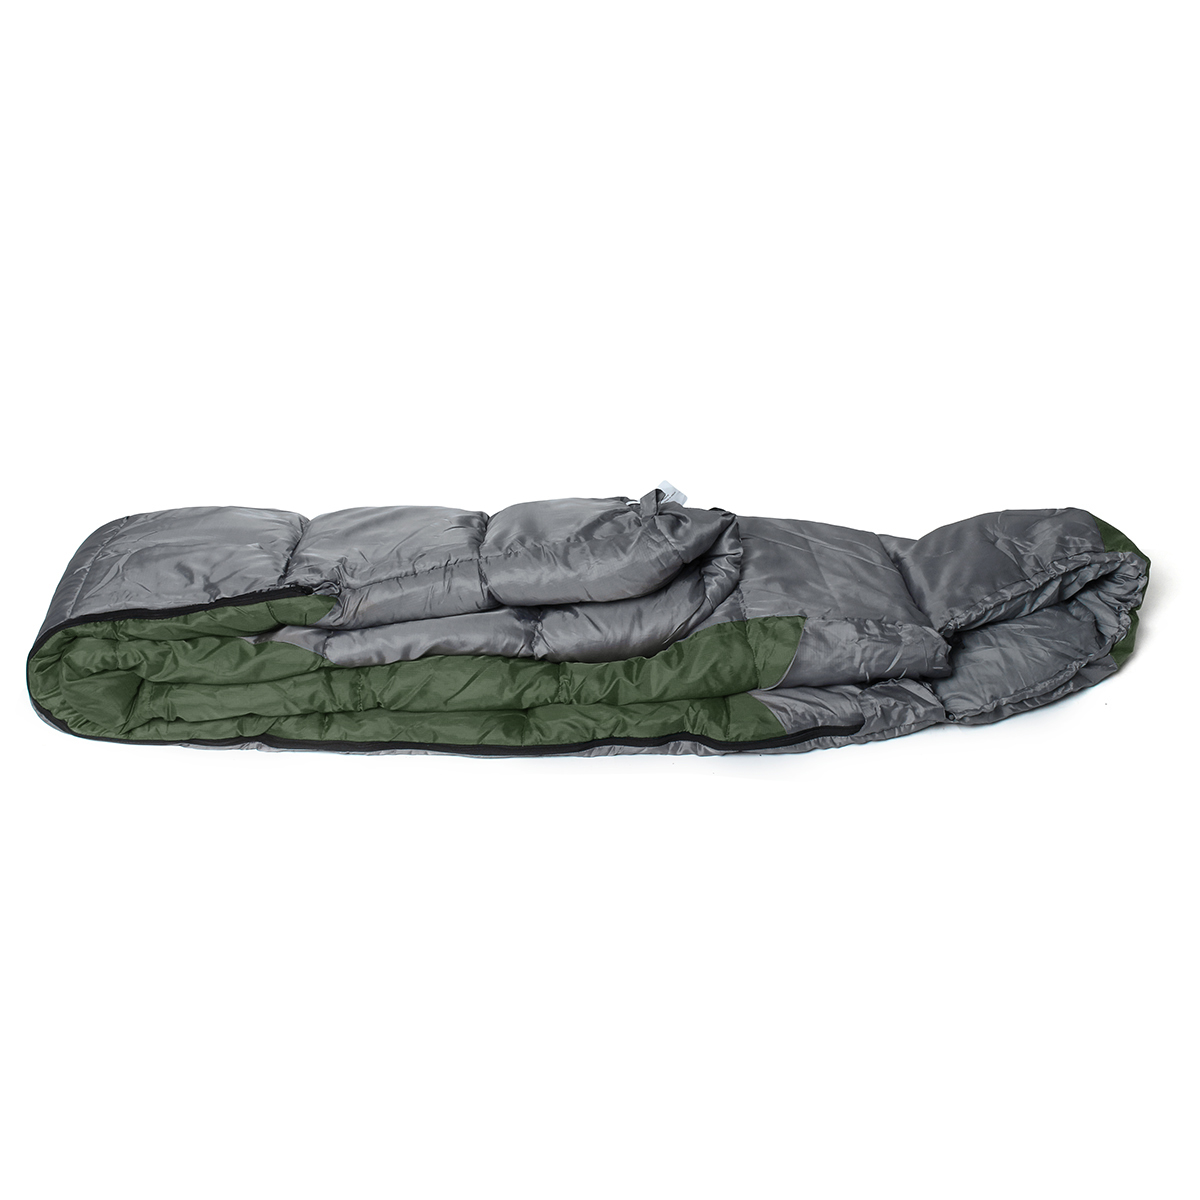 210T Waterproof Polyester 230x50cm Sleeping Bag Outdoor Camping Travel Single Person Envelope Sleeping Mat